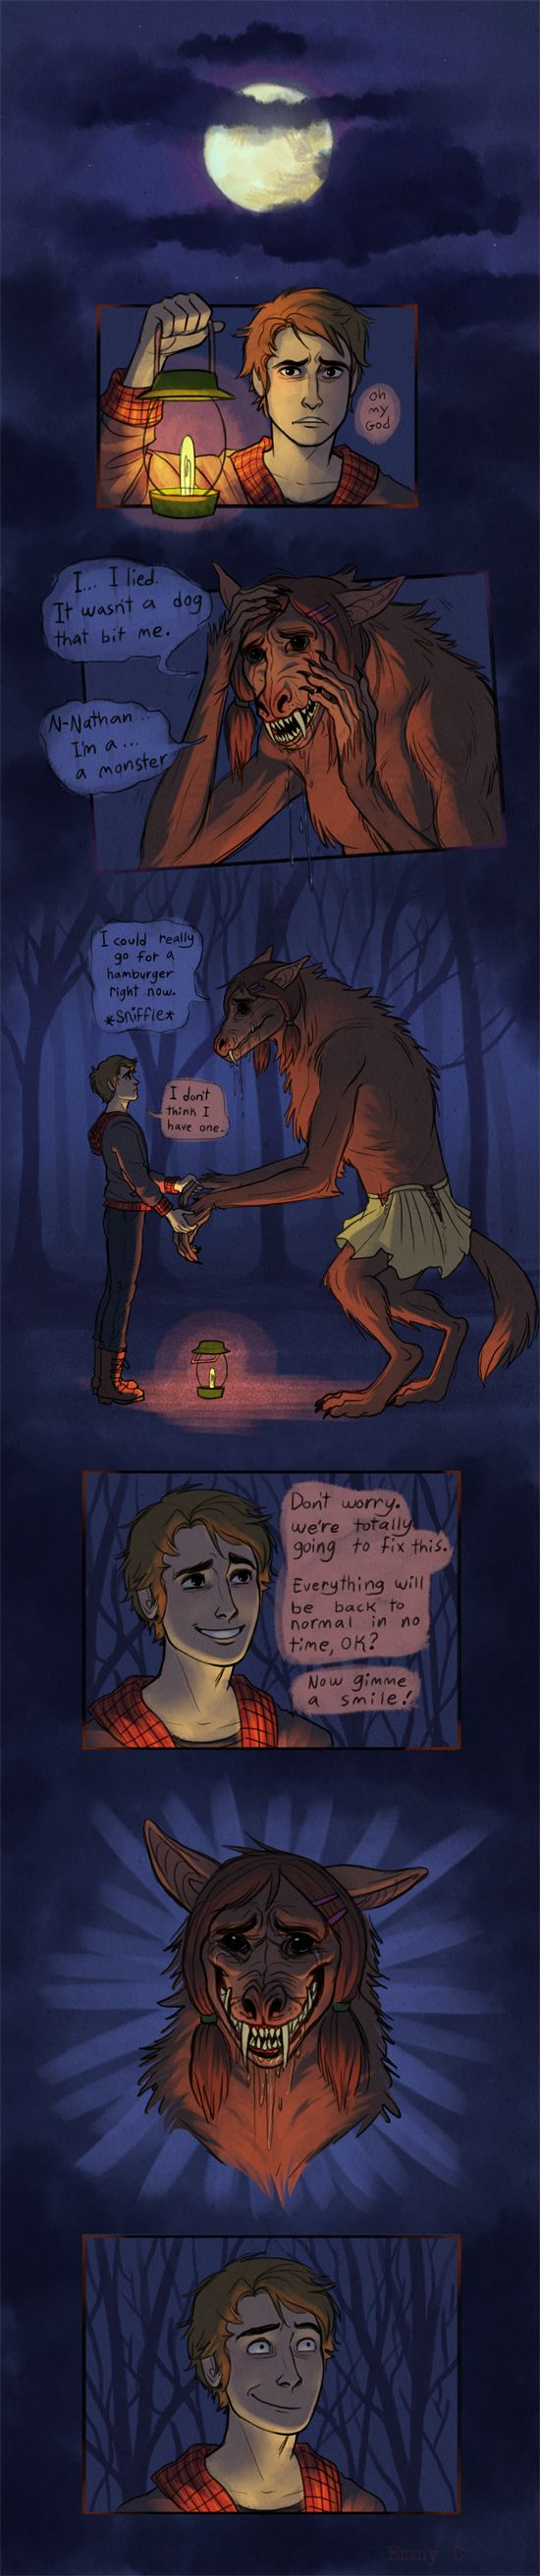 Werewolf comic by Emmy C on tumblr. If this were a regular webcomic, I'd definitely read it.